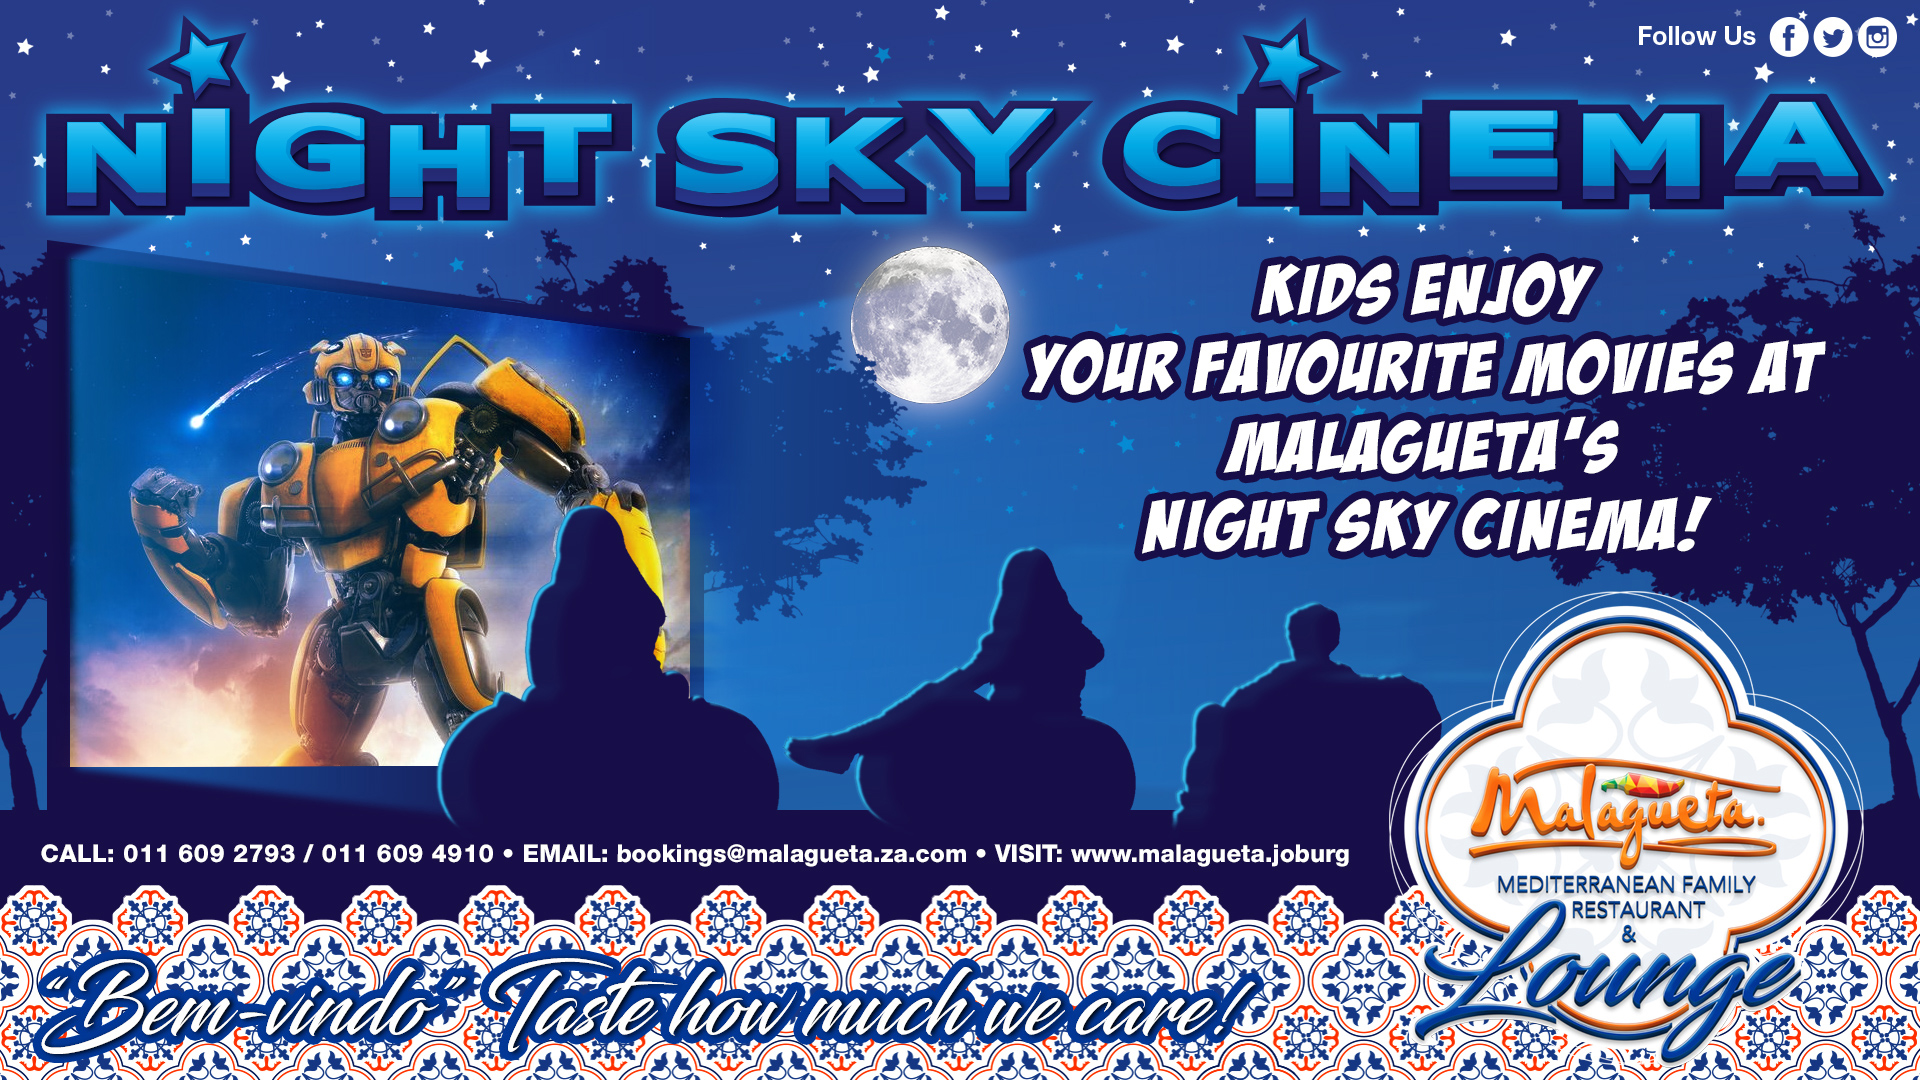 NIGHT_SKY_CINEMA_HD